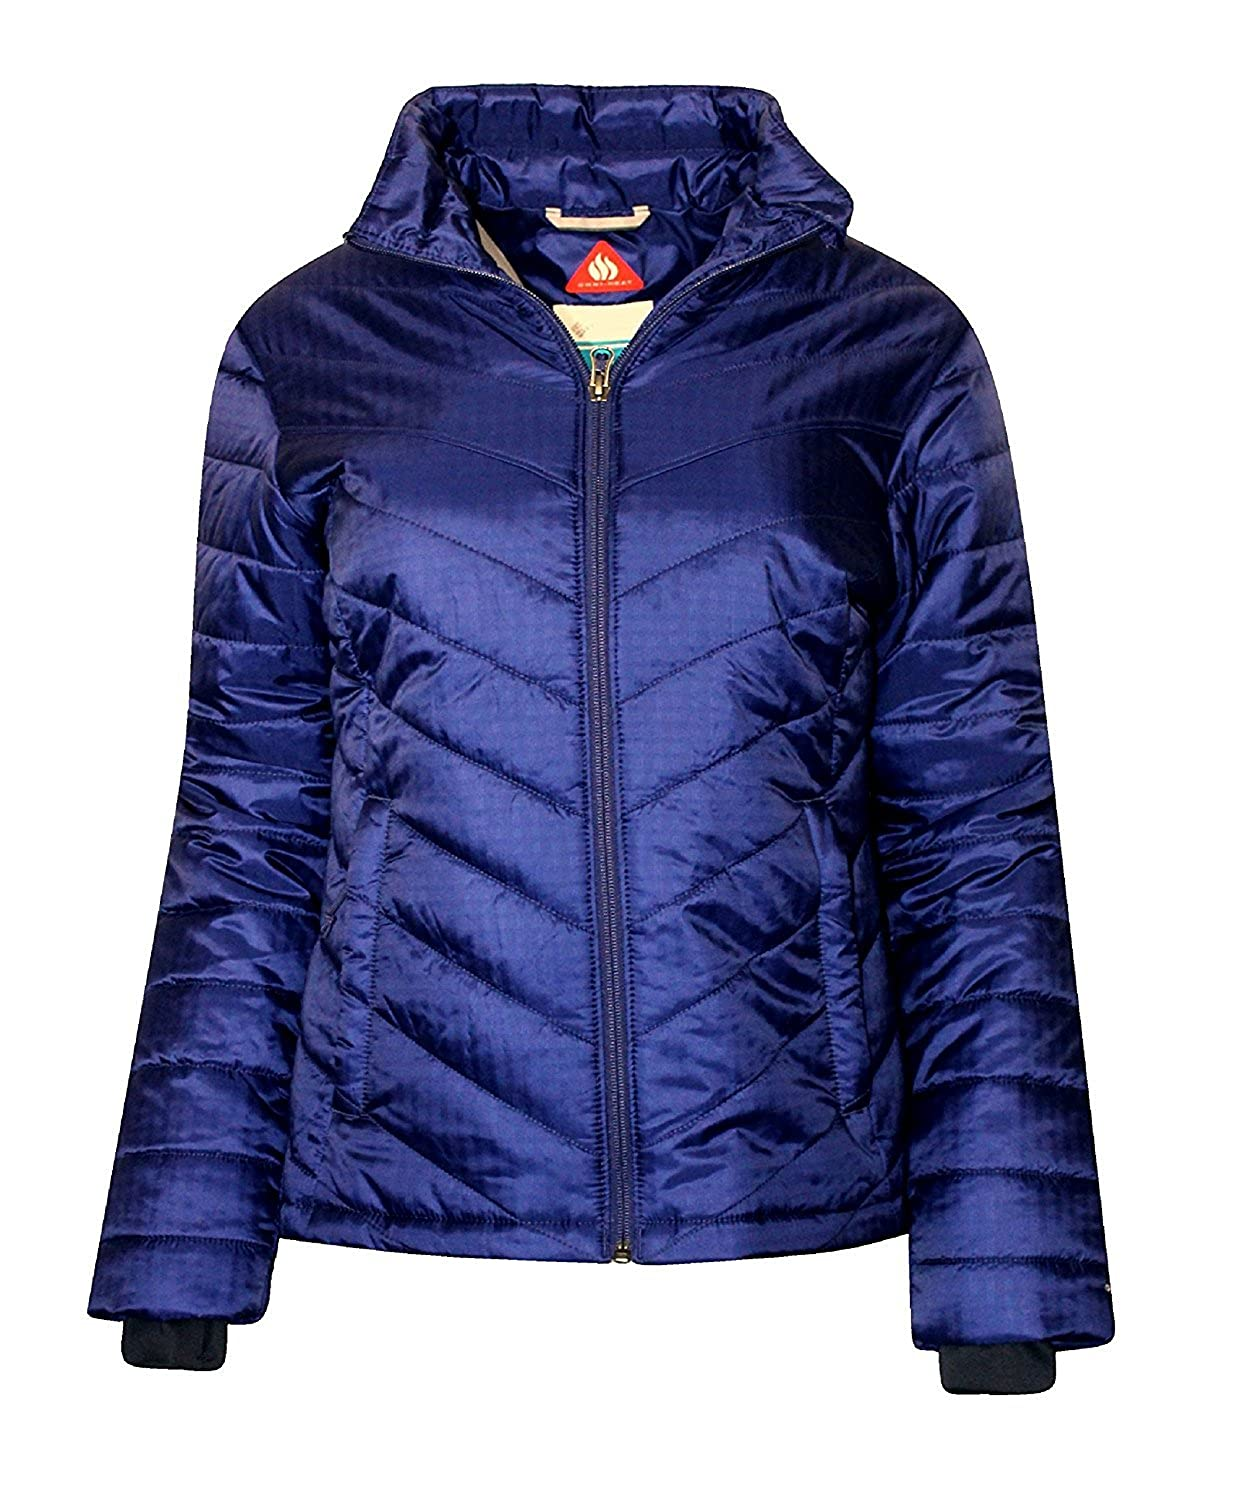 796cadb61642b Columbia Women s Plus Morning Light II Insulated Omni-Heat Jacket Skyward  best